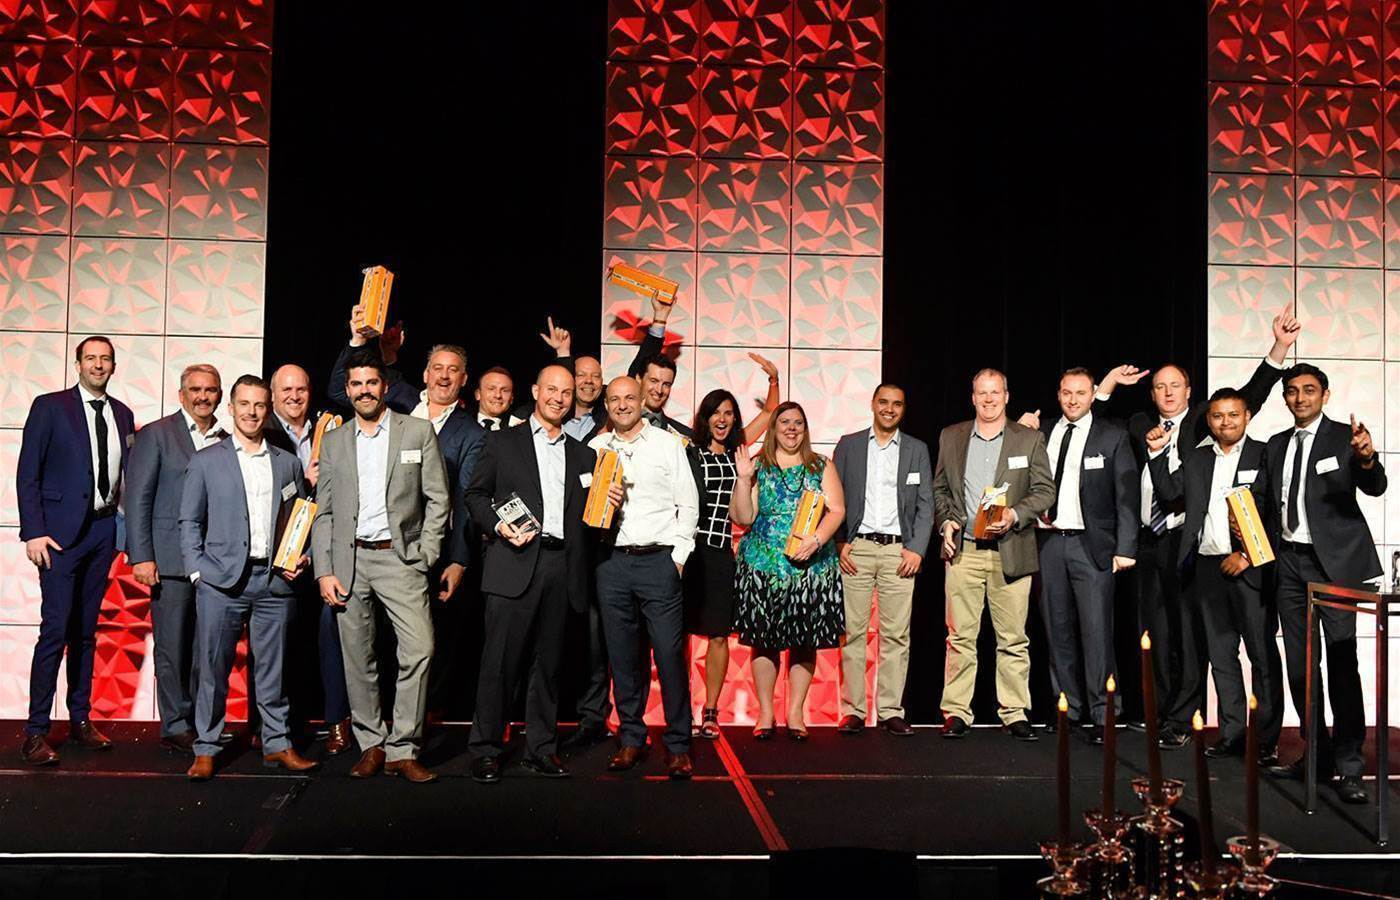 Barhead Solutions, Adactin, CMD Solutions top 2018 CRN Fast50